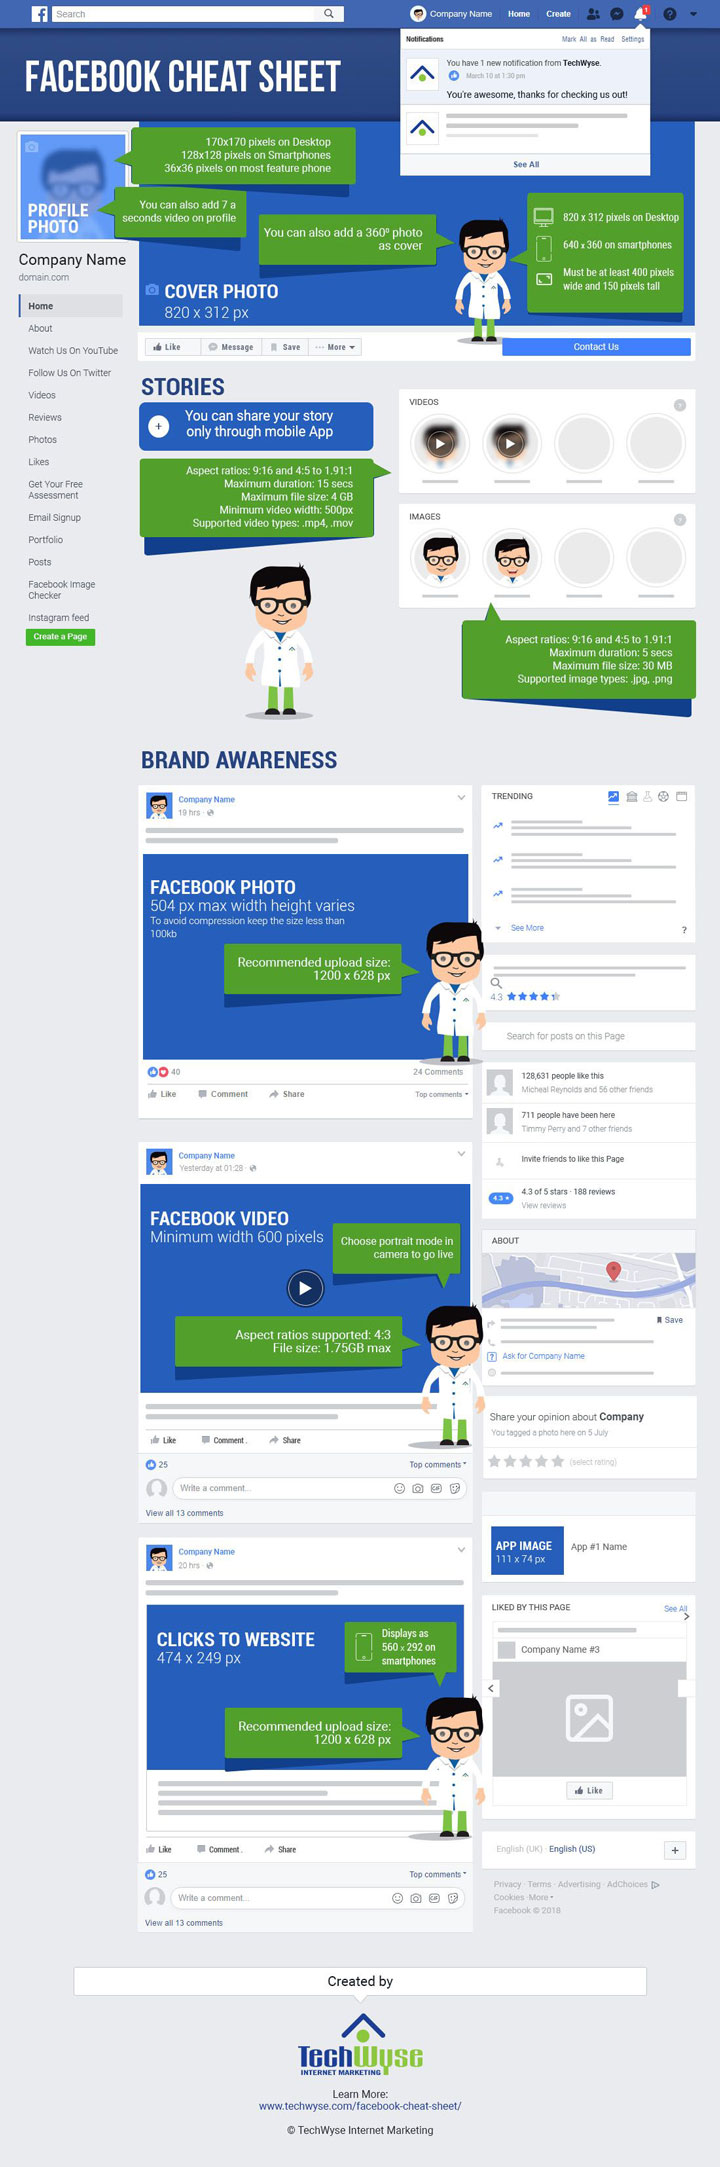 The Latest Facebook Image Dimensions 2019: Infographic